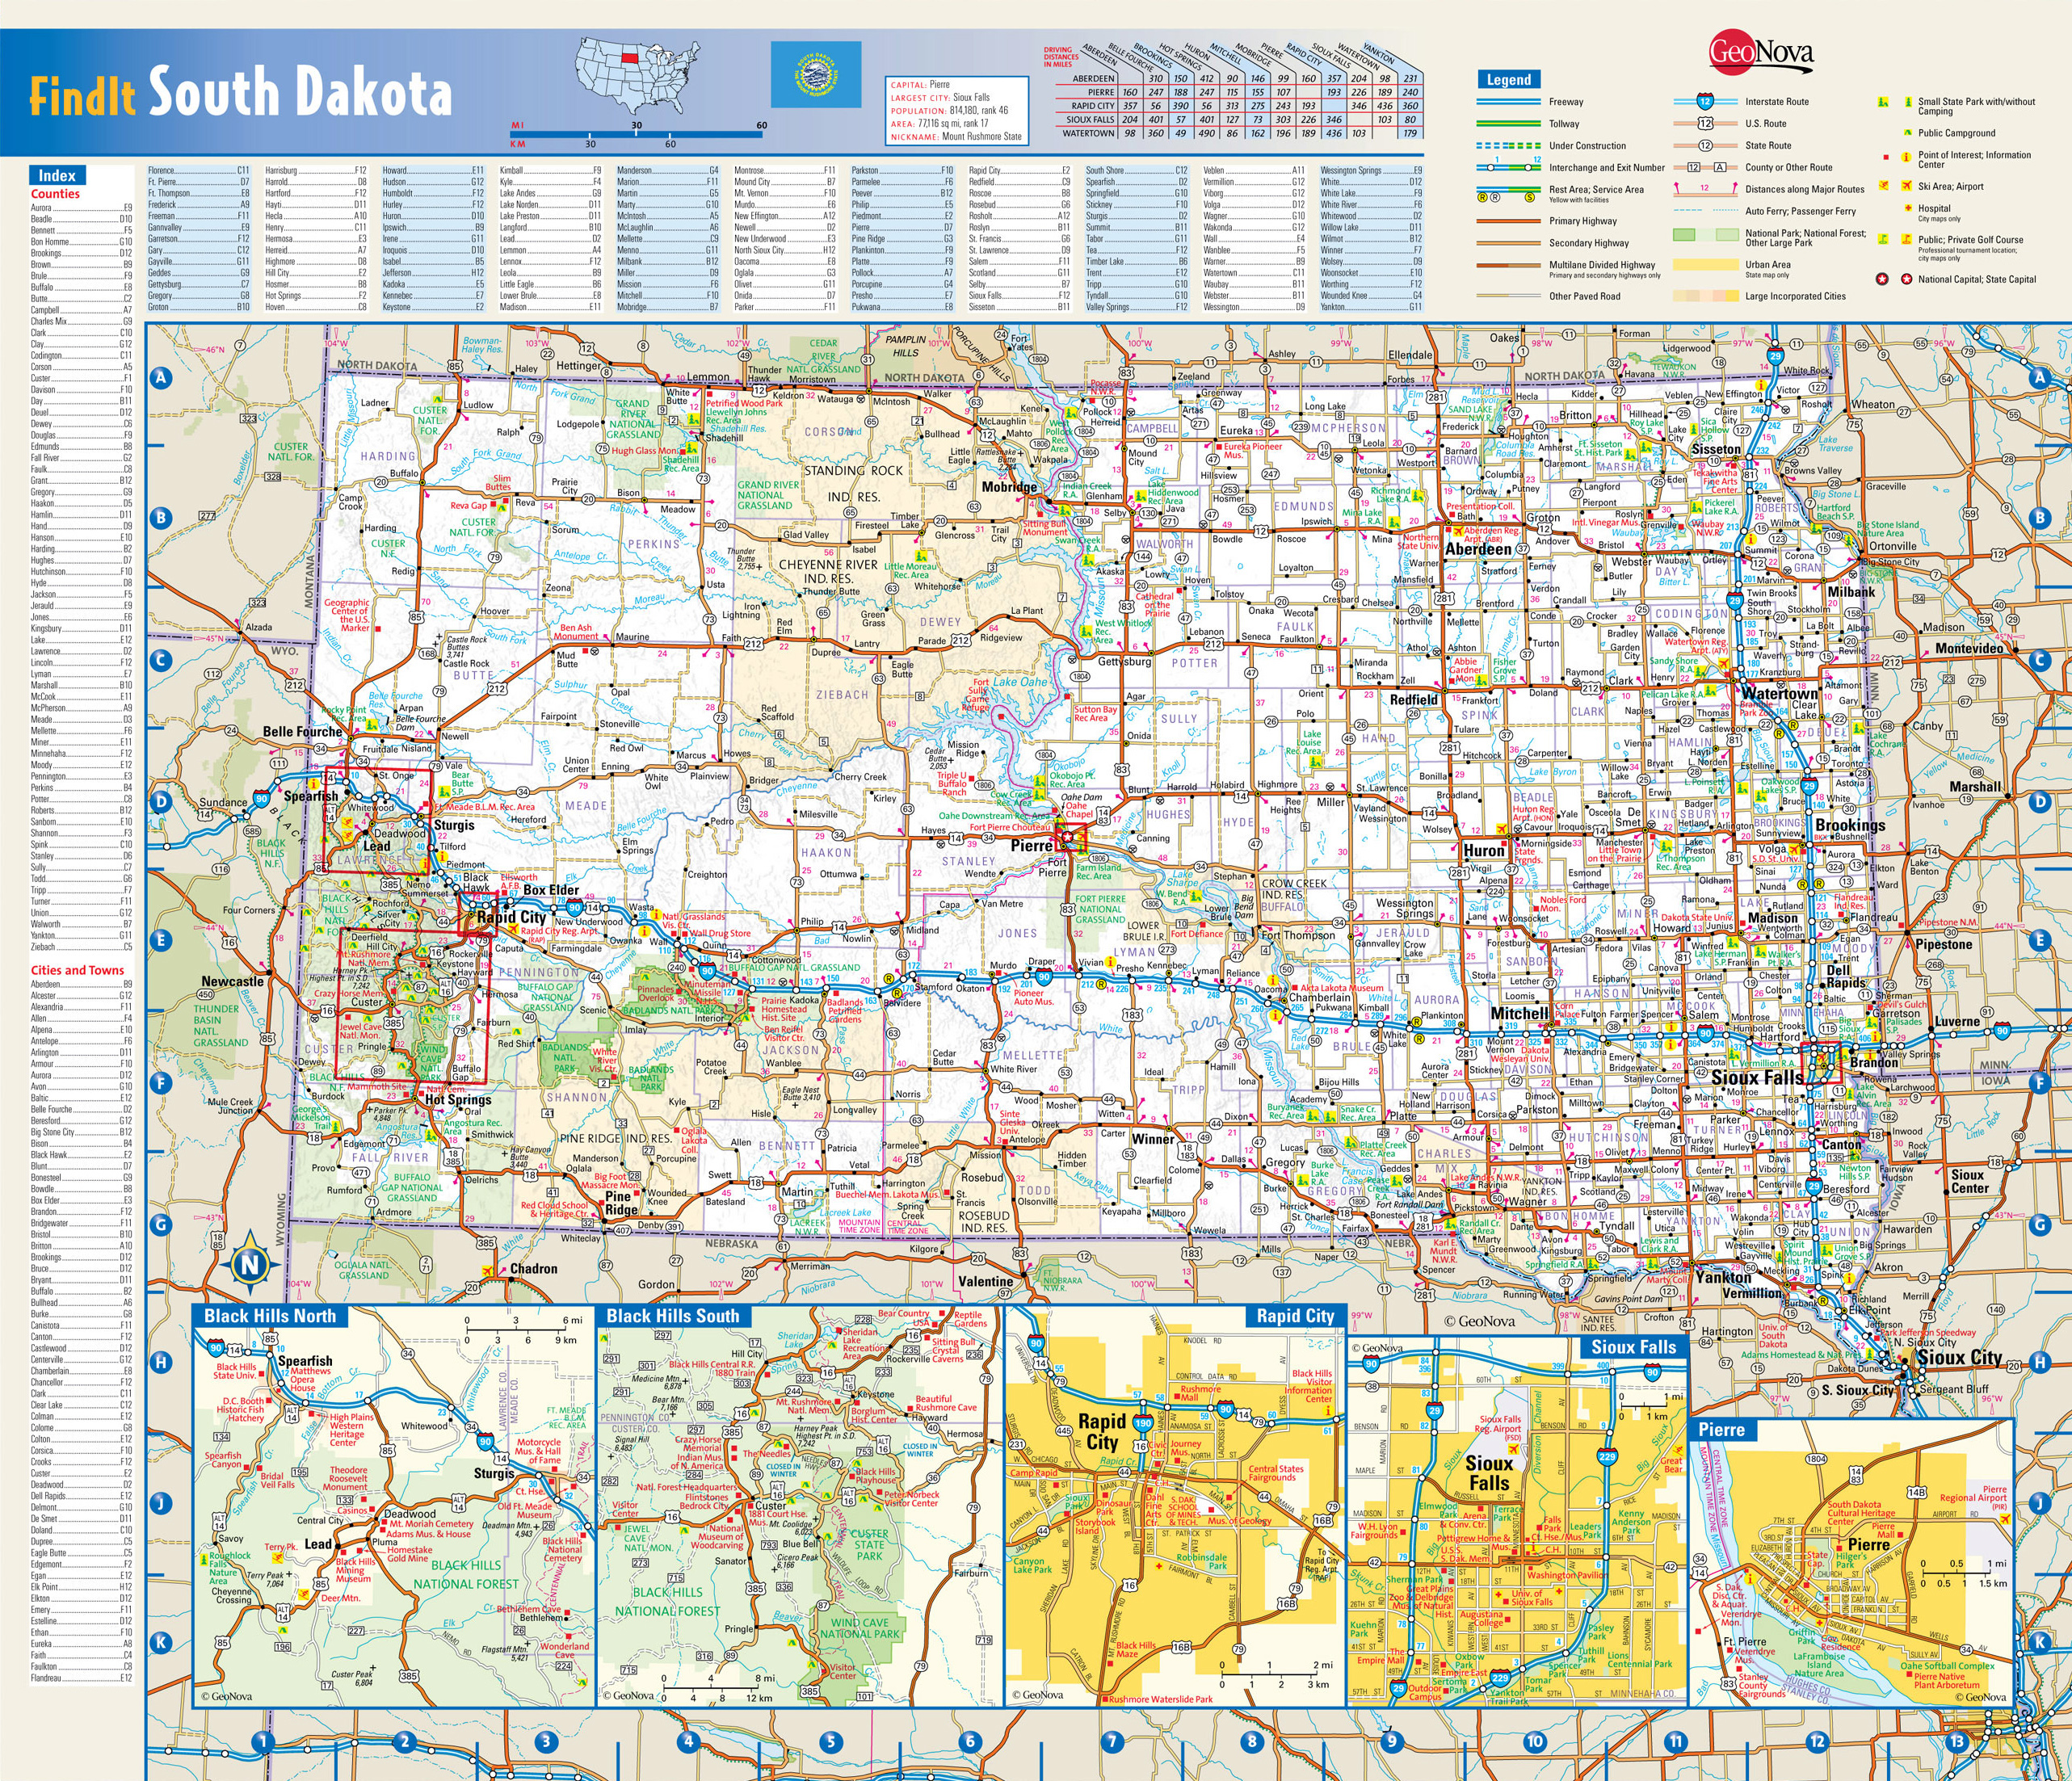 Large Detailed Political And Road Map Of The USA The USA Large - Map west usa national parks